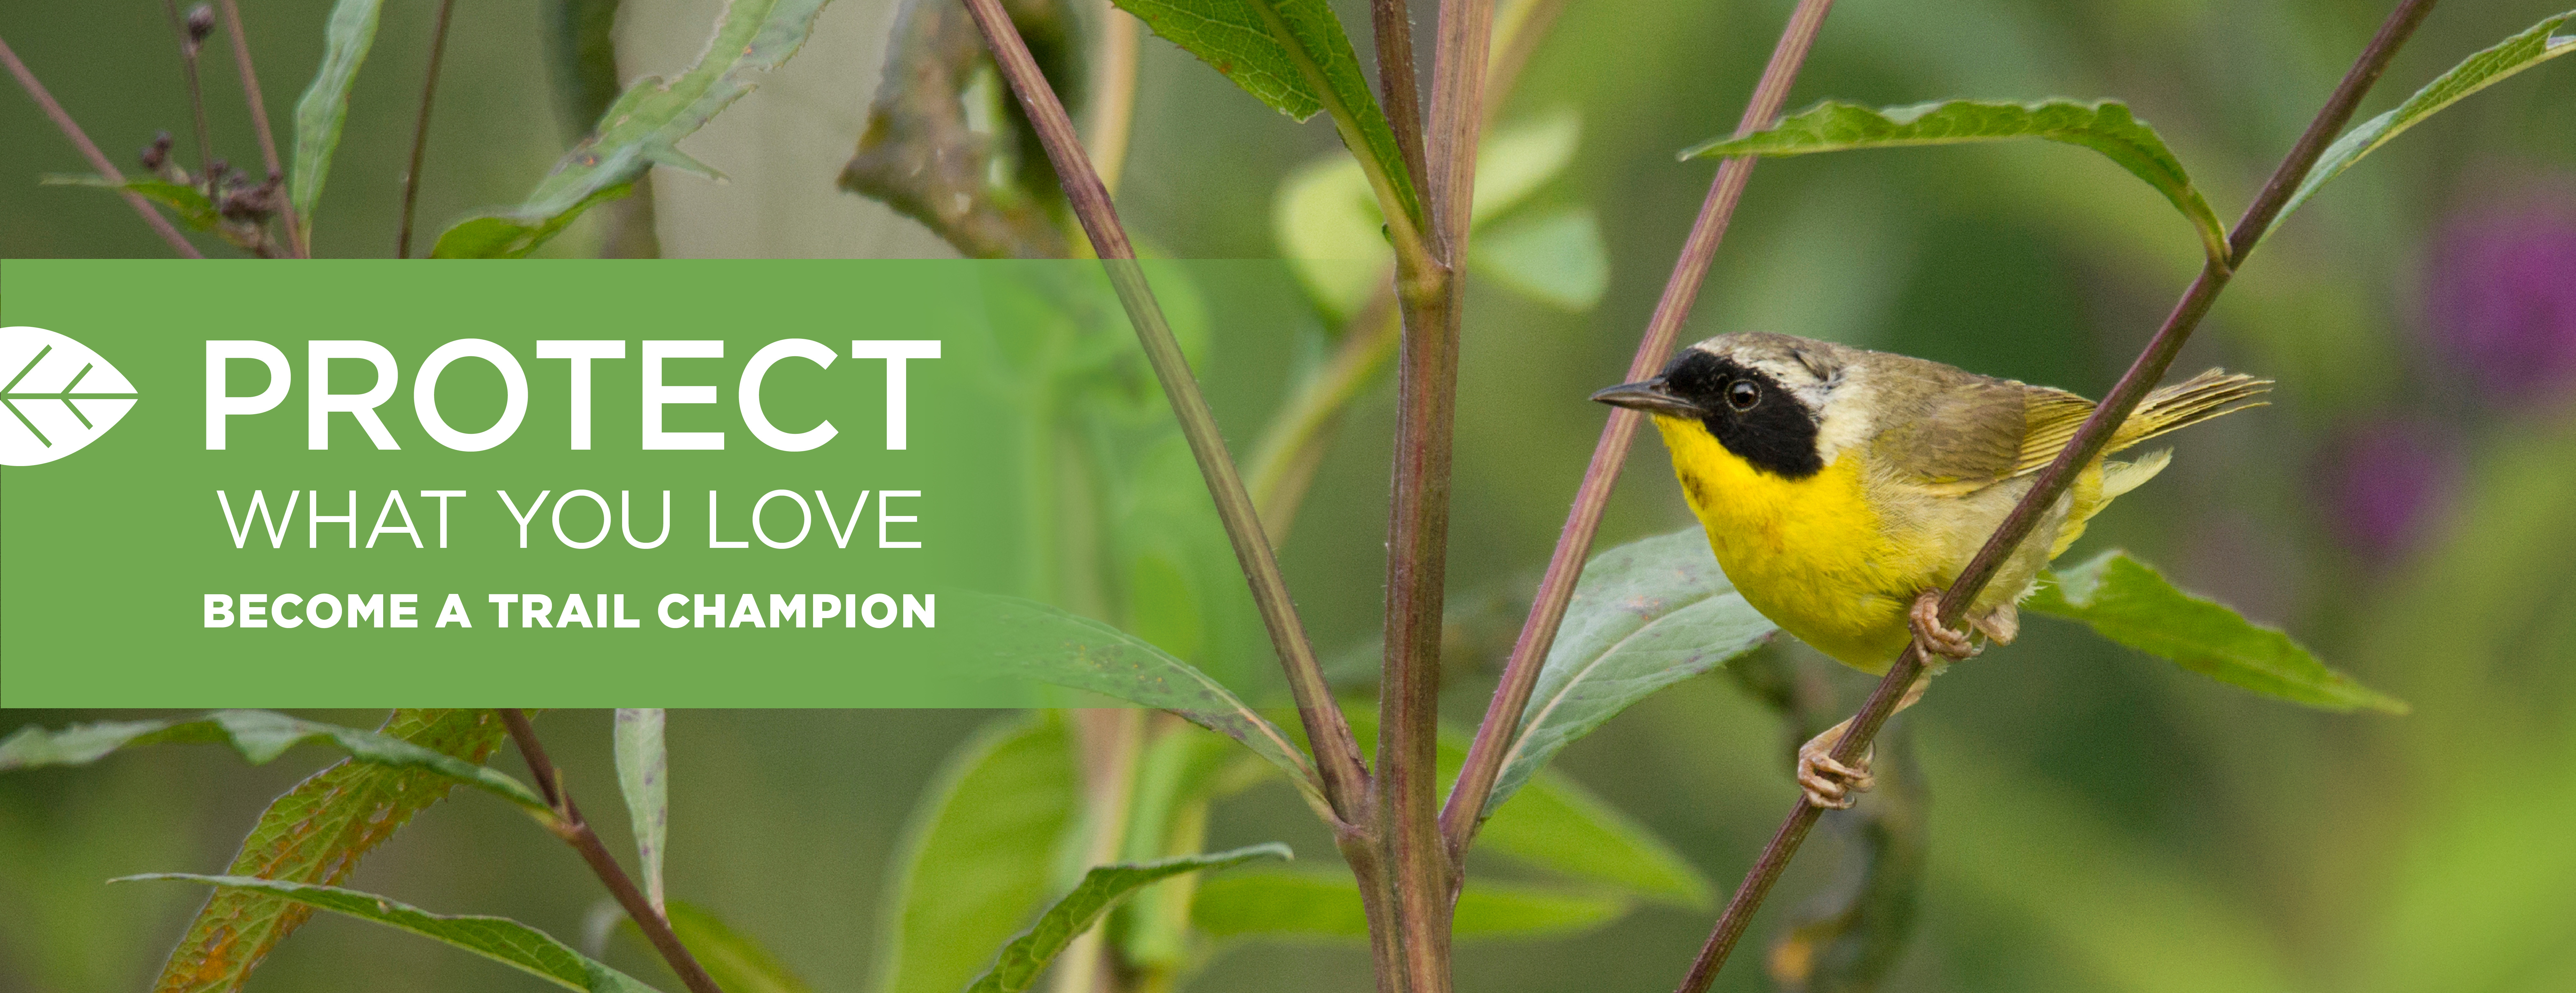 Image of a male Common Yellowthroat Warbler on a tree branch next to words that say PROTECT WHAT YOU LOVE followed by the Cincinnati Nature Center logo